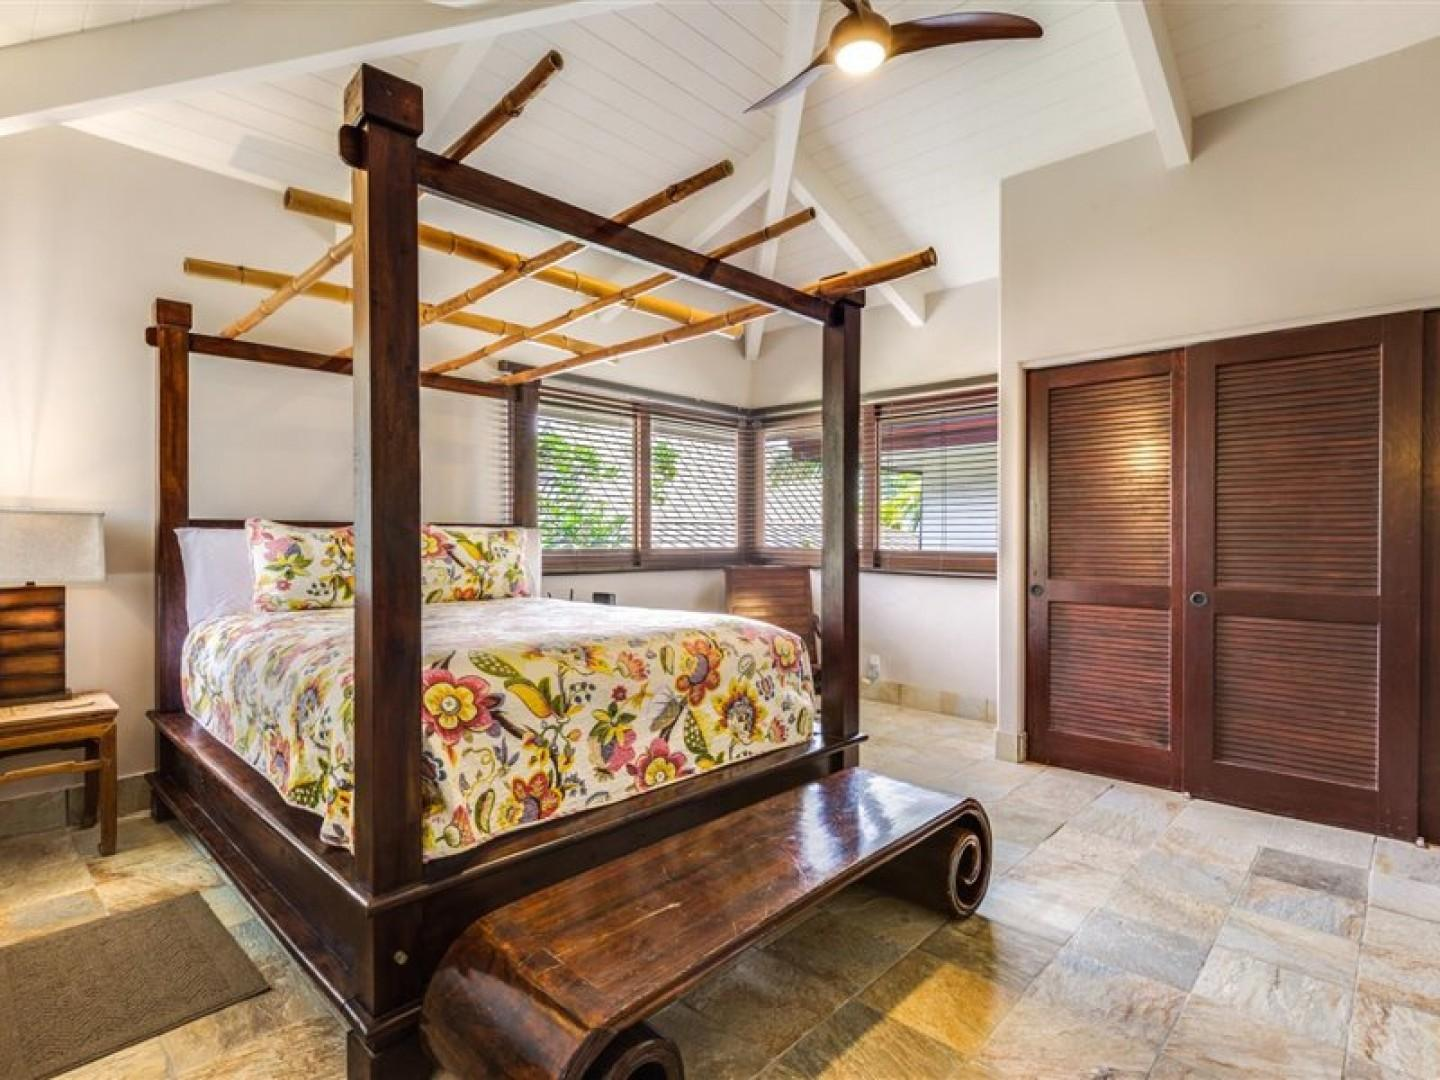 Guest bedroom with tropical touches and vaulted ceiling